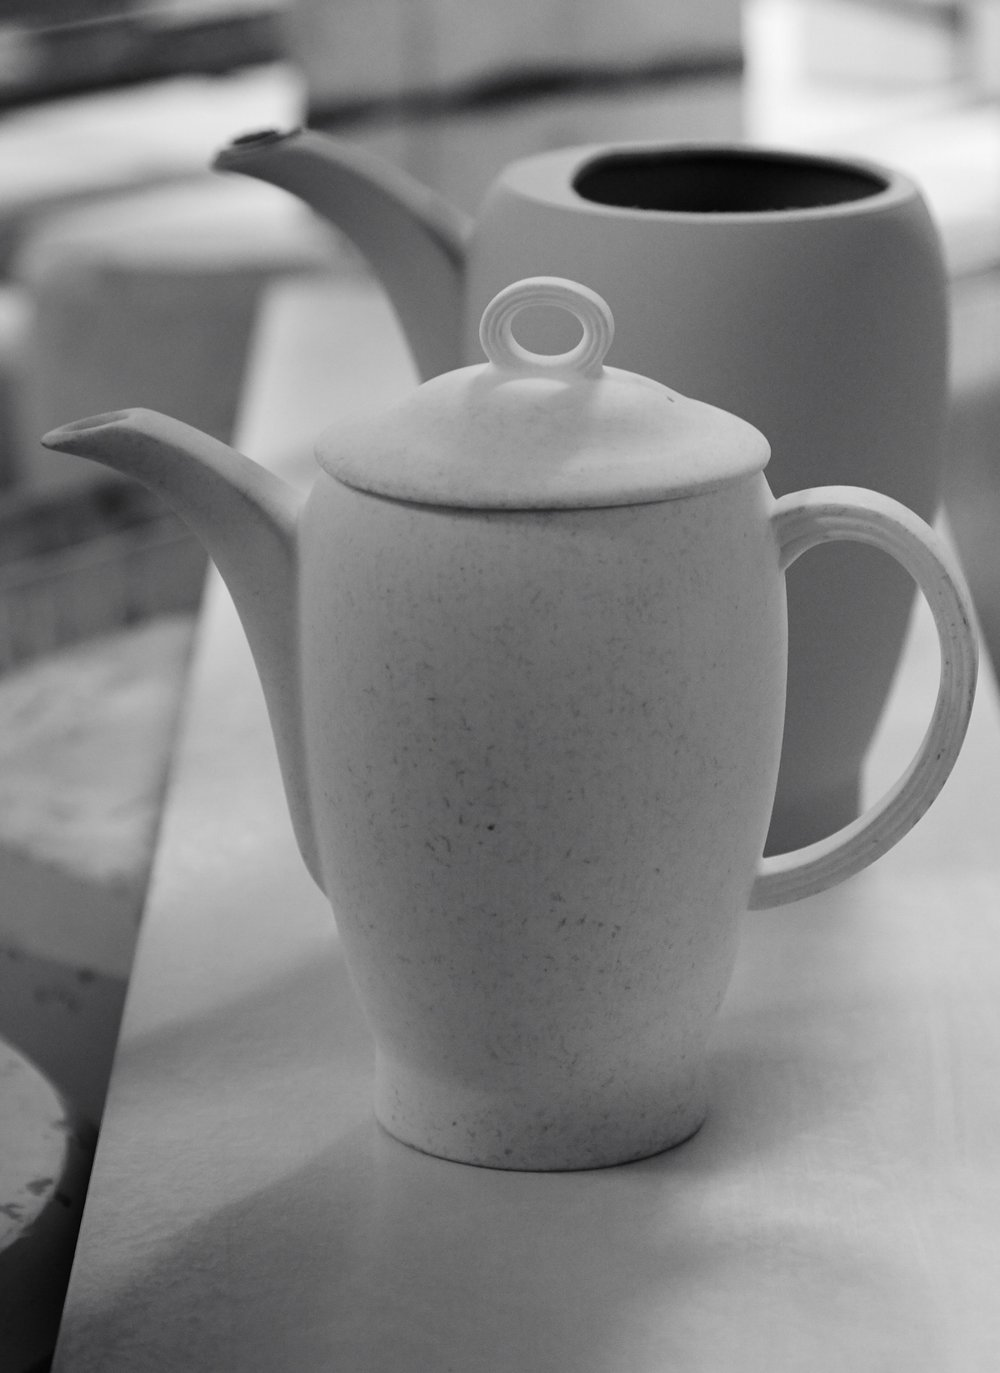 A teapot ready for glazing.